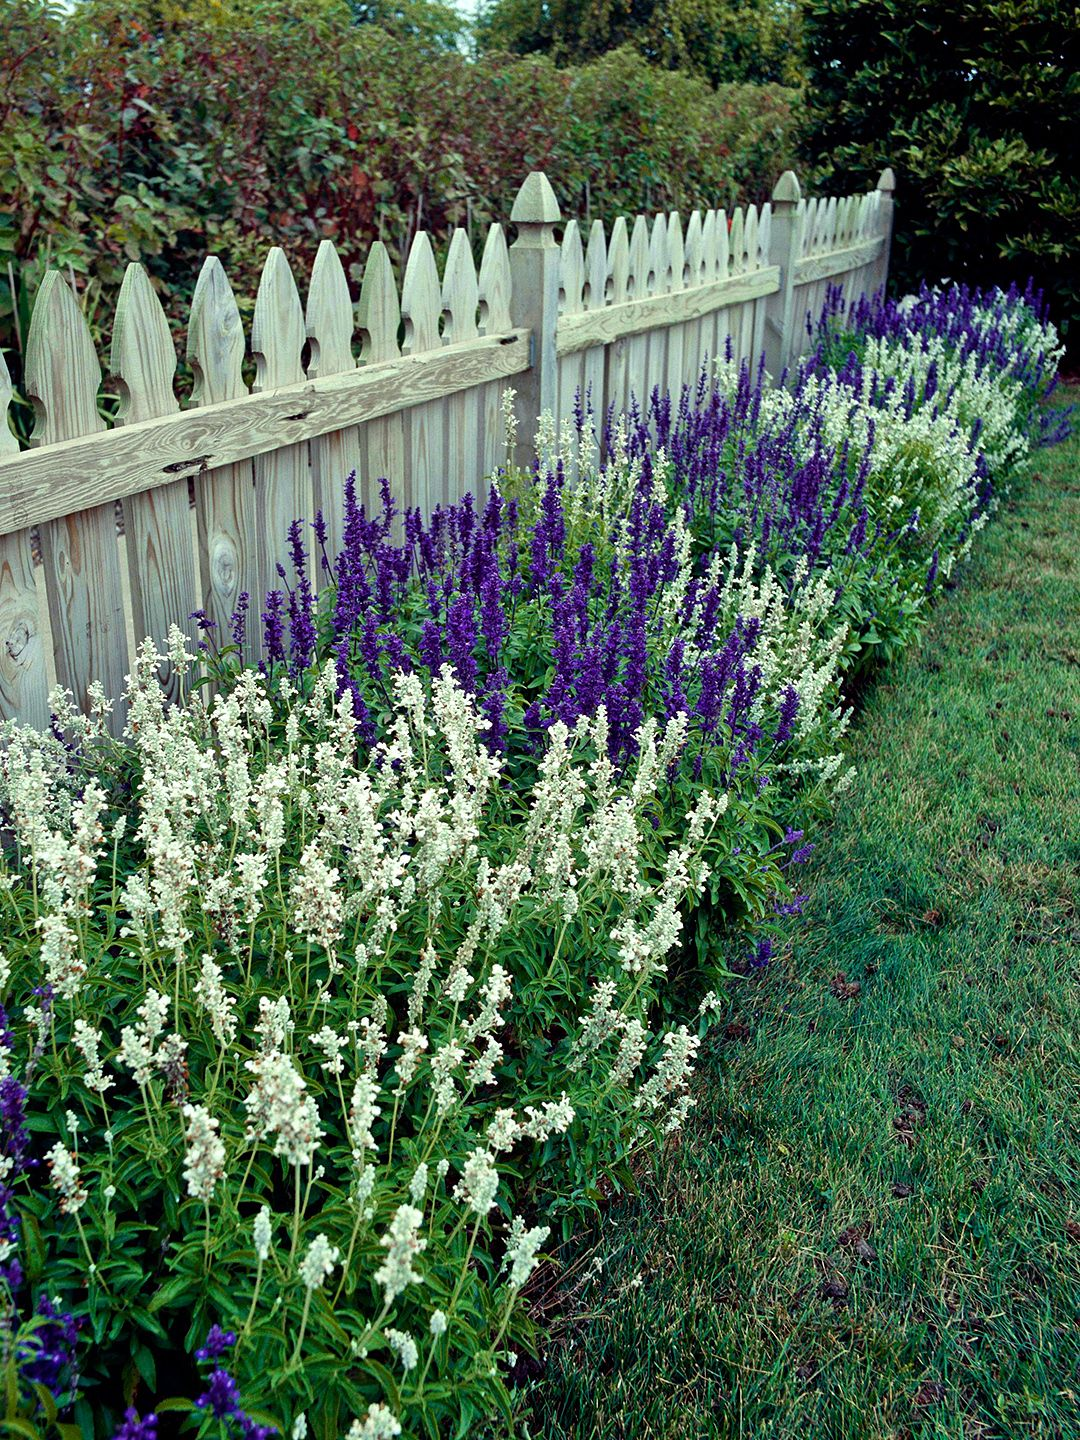 31 Salvia Varieties That Will Look Stunning In Your Garden